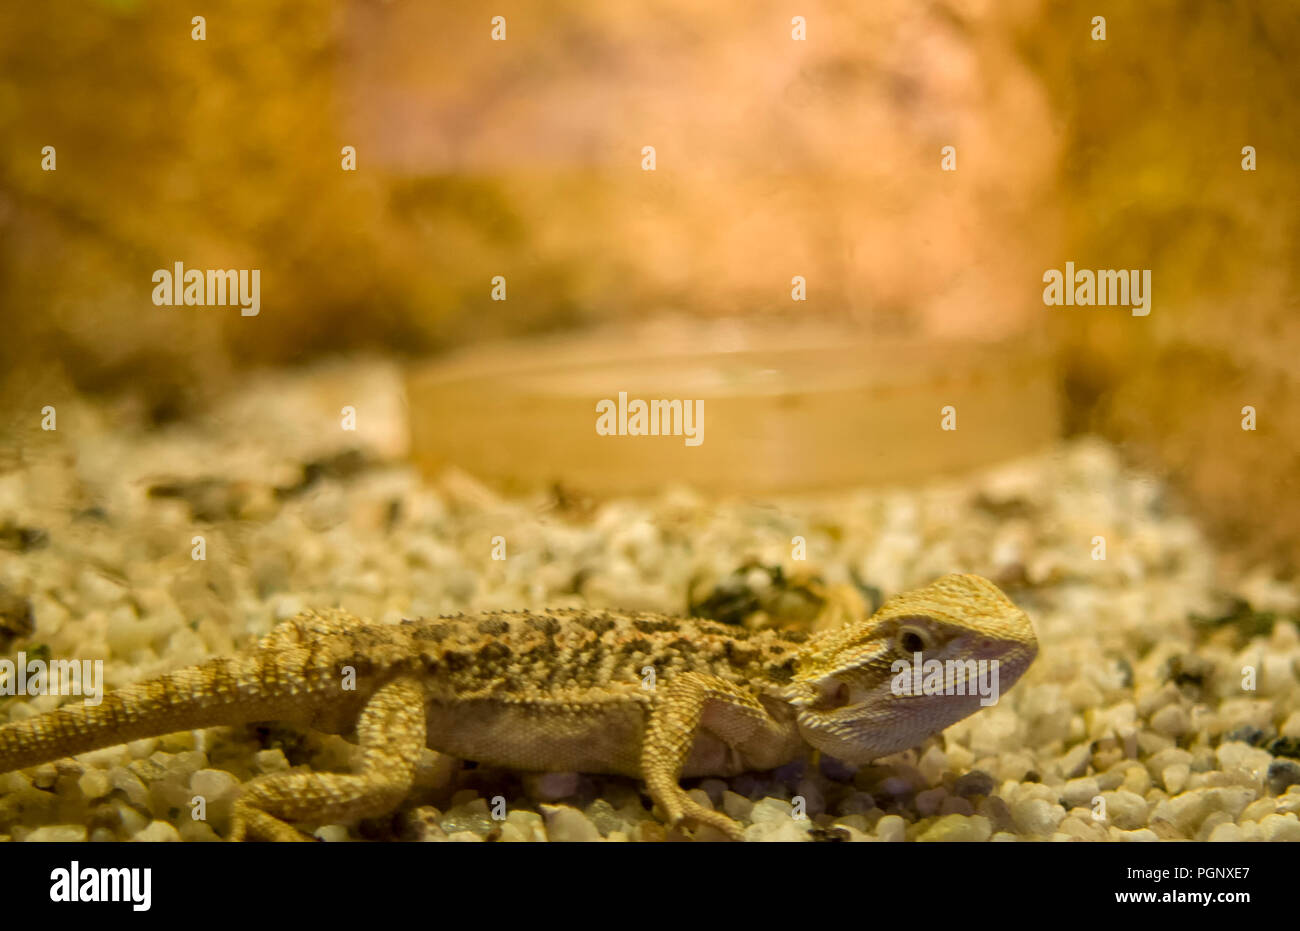 Young pogona, Bearded dragon close up, shallow dof.The name bearded dragon refers to the beard of the dragon,the underside of the throat which can tur Stock Photo